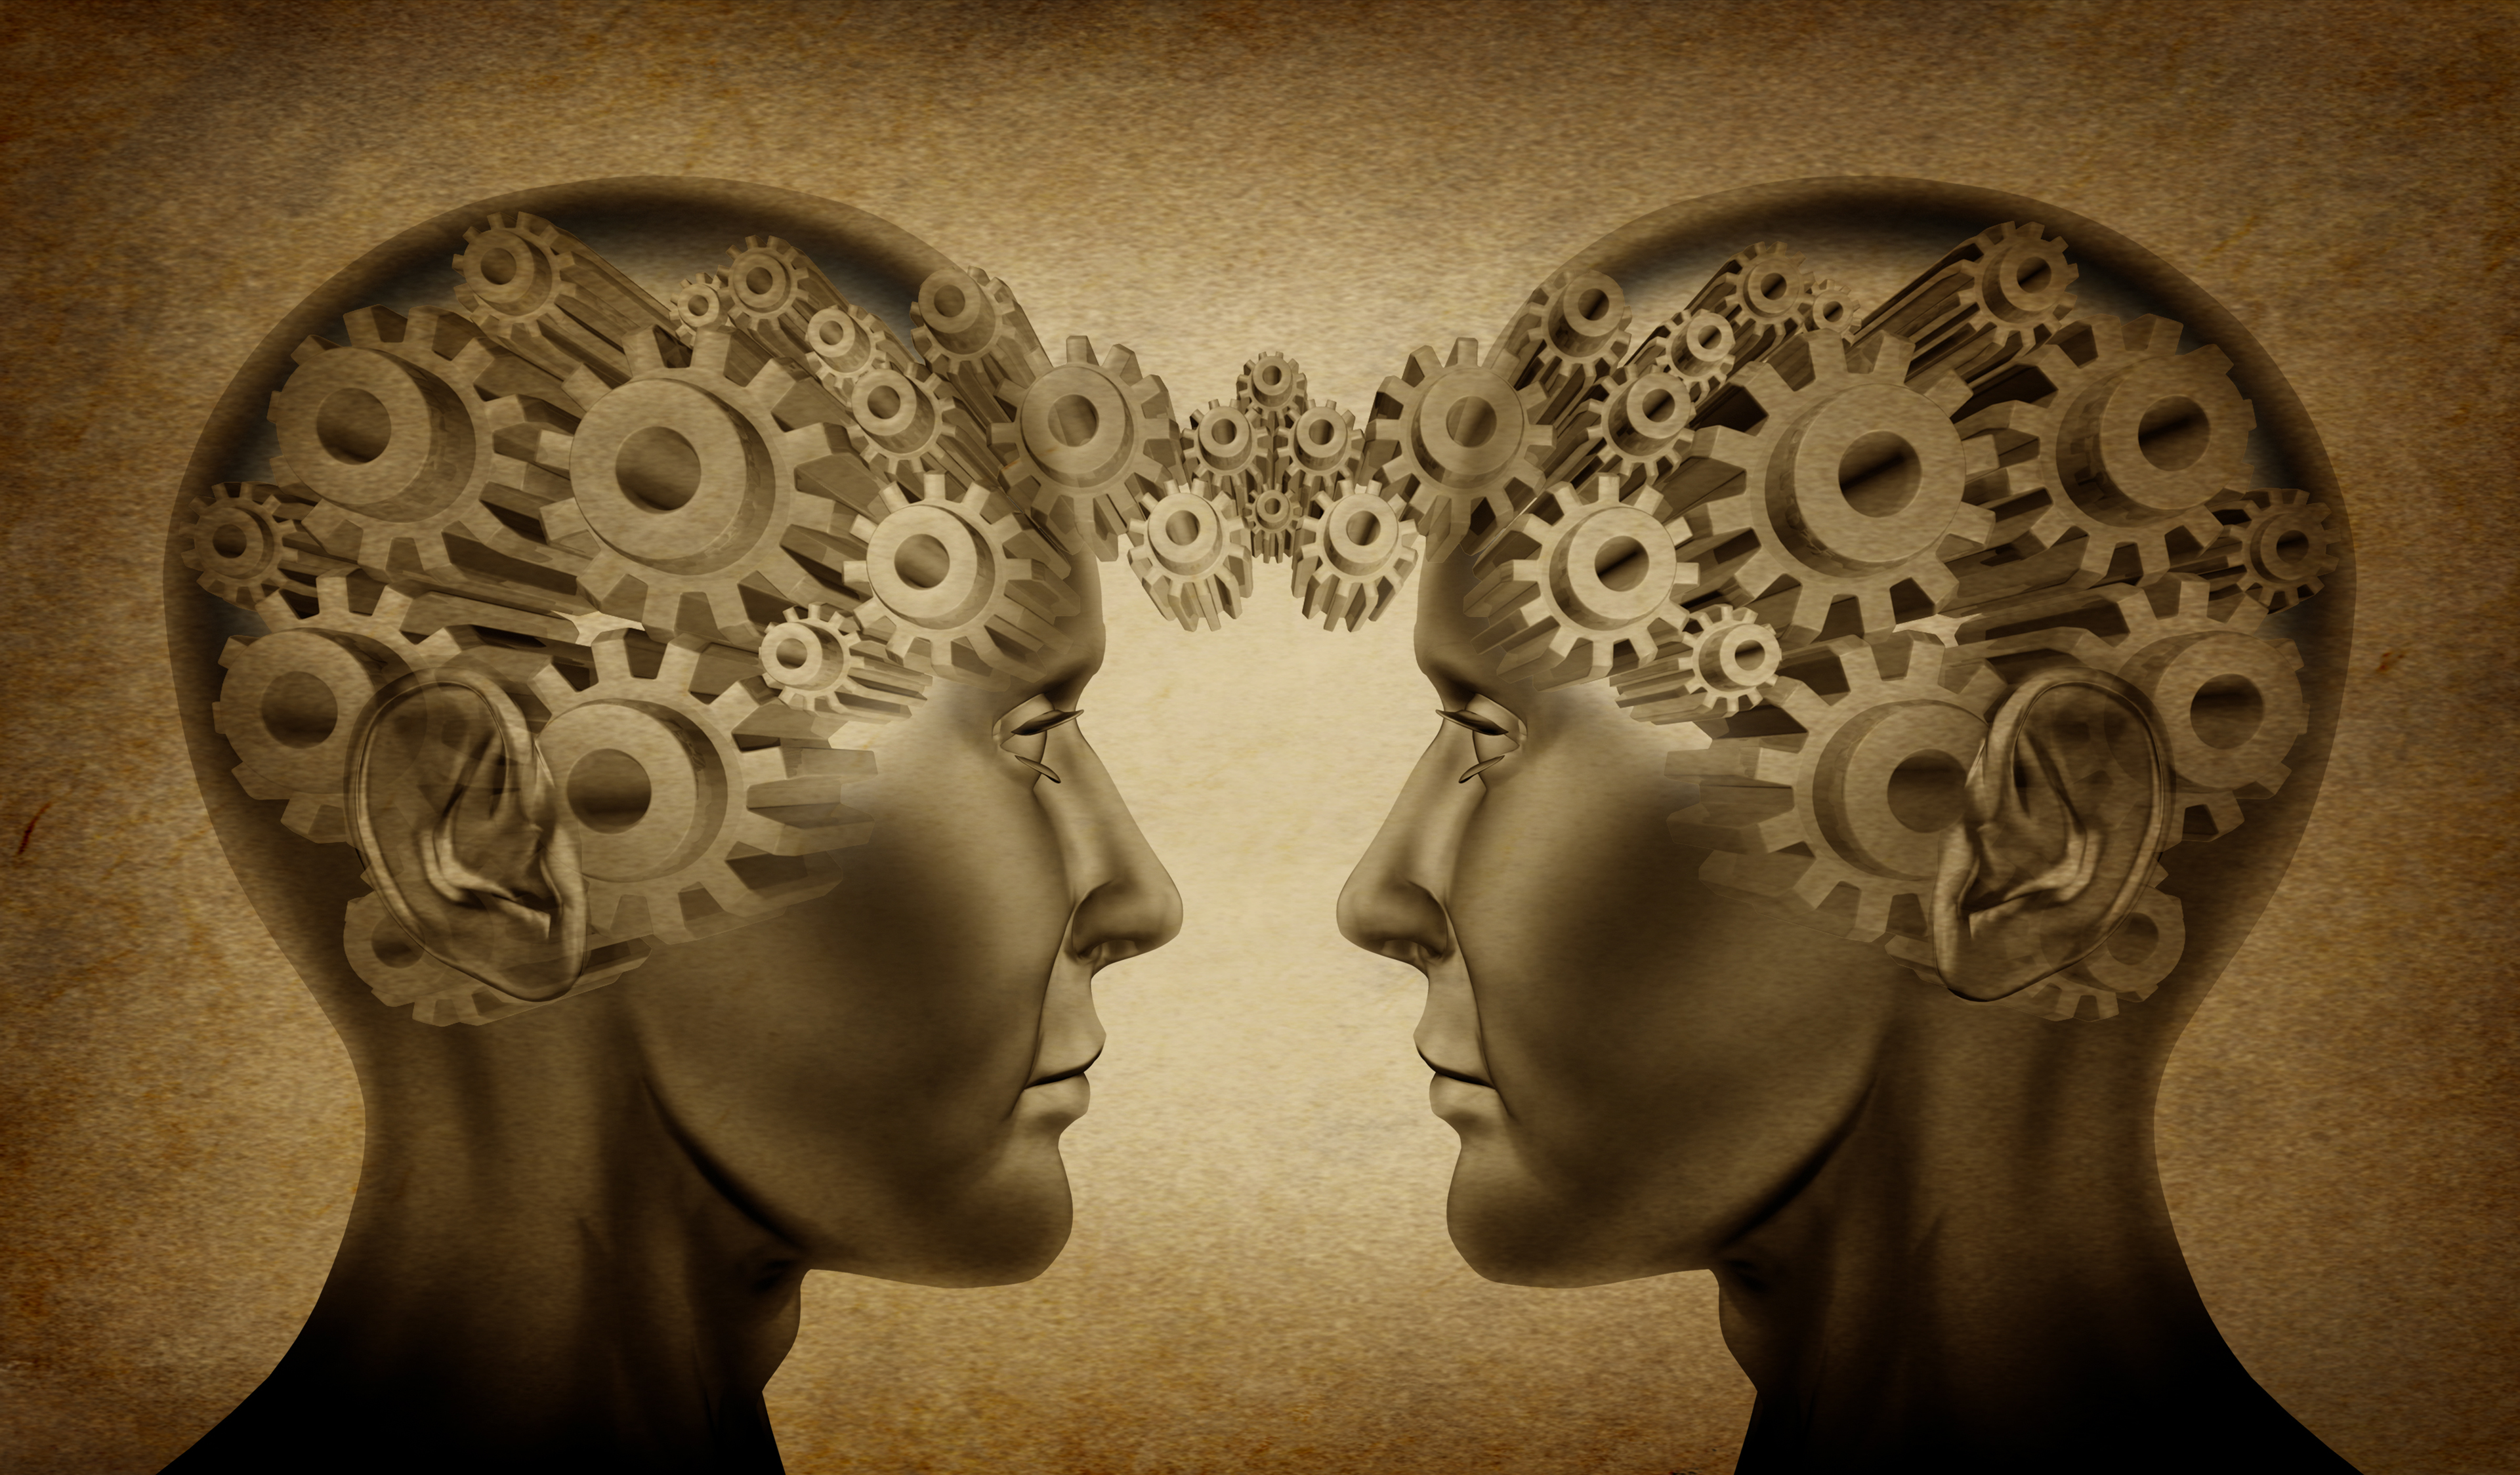 the brain of an introvert compared to that of an extrovert